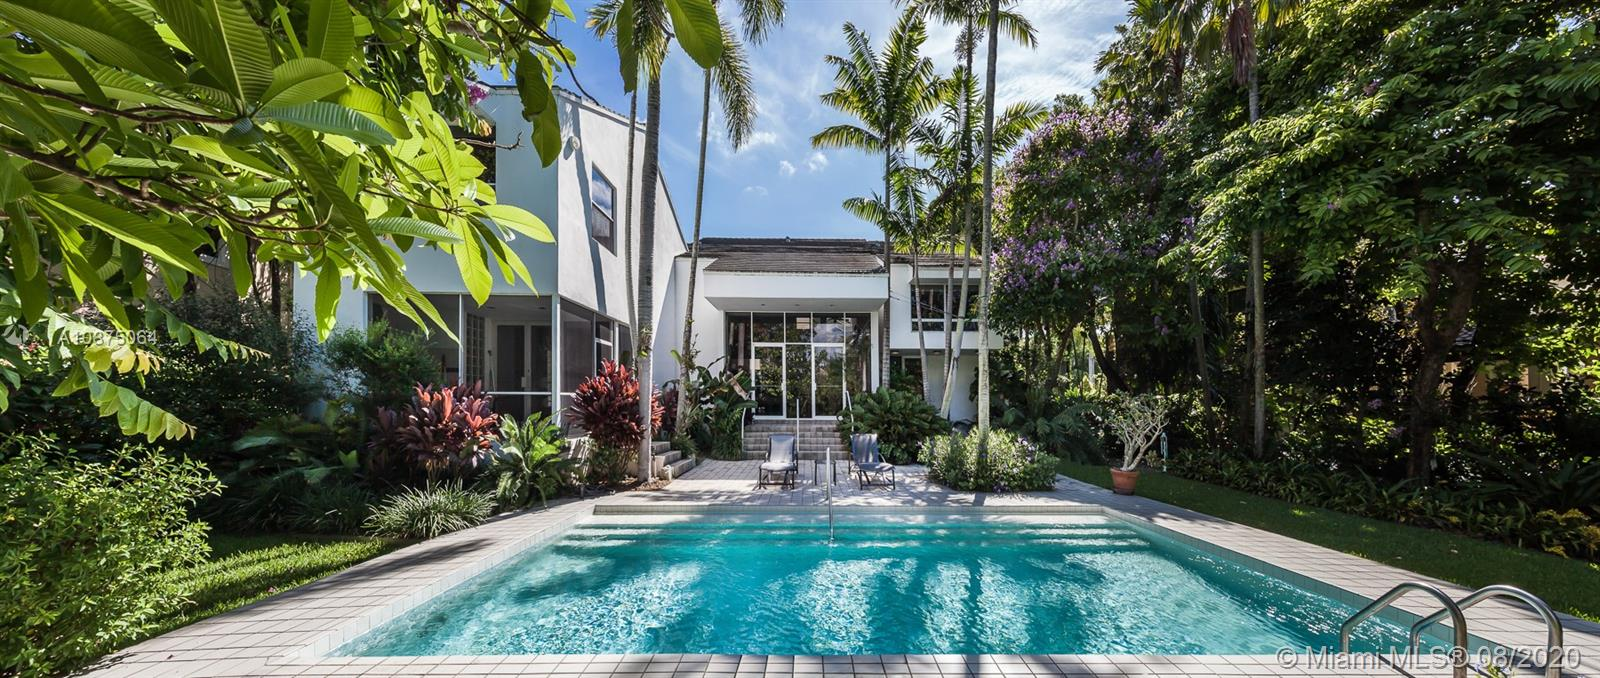 Located in the prestigious Islands of Cocoplum, this contemporary home sits on an 18,676 SqFt lot on a cul-de-sac. Built in 1988, addition in 1992, by famous Peruvian architect Miguel Rodrigo Mazure, this 5,962 total Sq Ft, 4BD/4+1BA home was made for entertaining with a private backyard, pool, outdoor BBQ, and brand new 27 foot dock. Convenient access to Biscayne Bay. Landscape design by Raymond Jungles. The living room offers an open layout with a formal dining room and bar great for hosting. Enjoy 3 levels of authentic & unique architecture with natural light illuminating the living room. Interior features: chef's kitchen w/ stainless steel appliances, dine-in kitchen & breakfast area. Primary suite with impressive bathroom, walk-in closet with built-ins and beautiful water views.